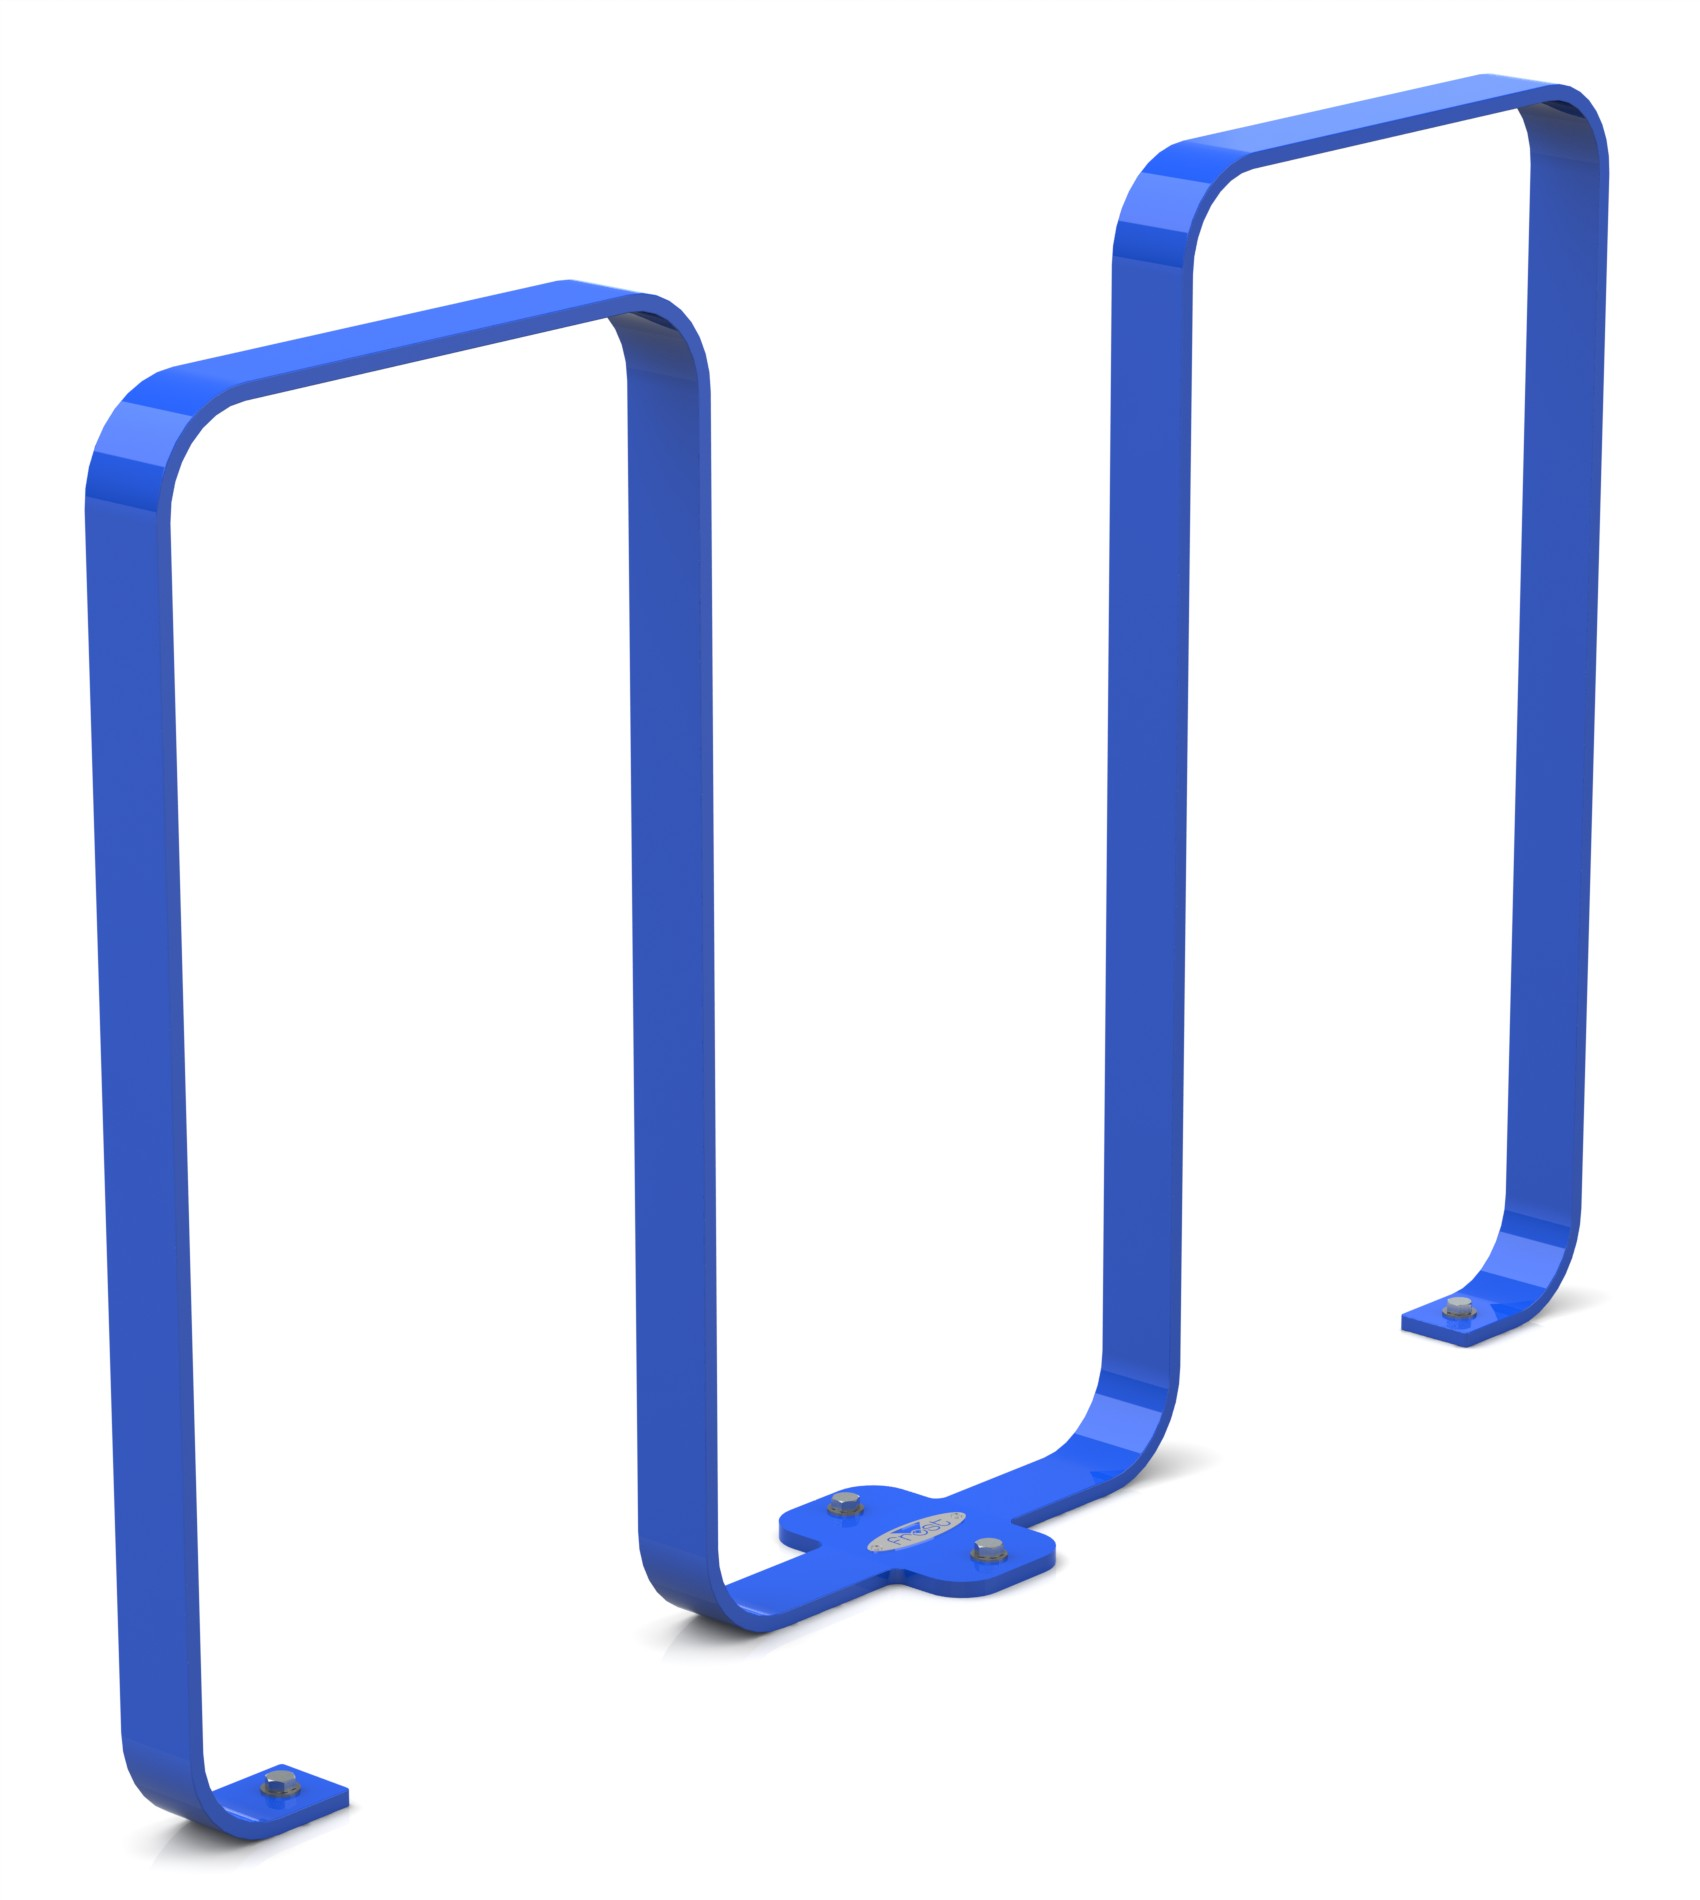 Frost 2080 - Linguini bike rack blue.JPG